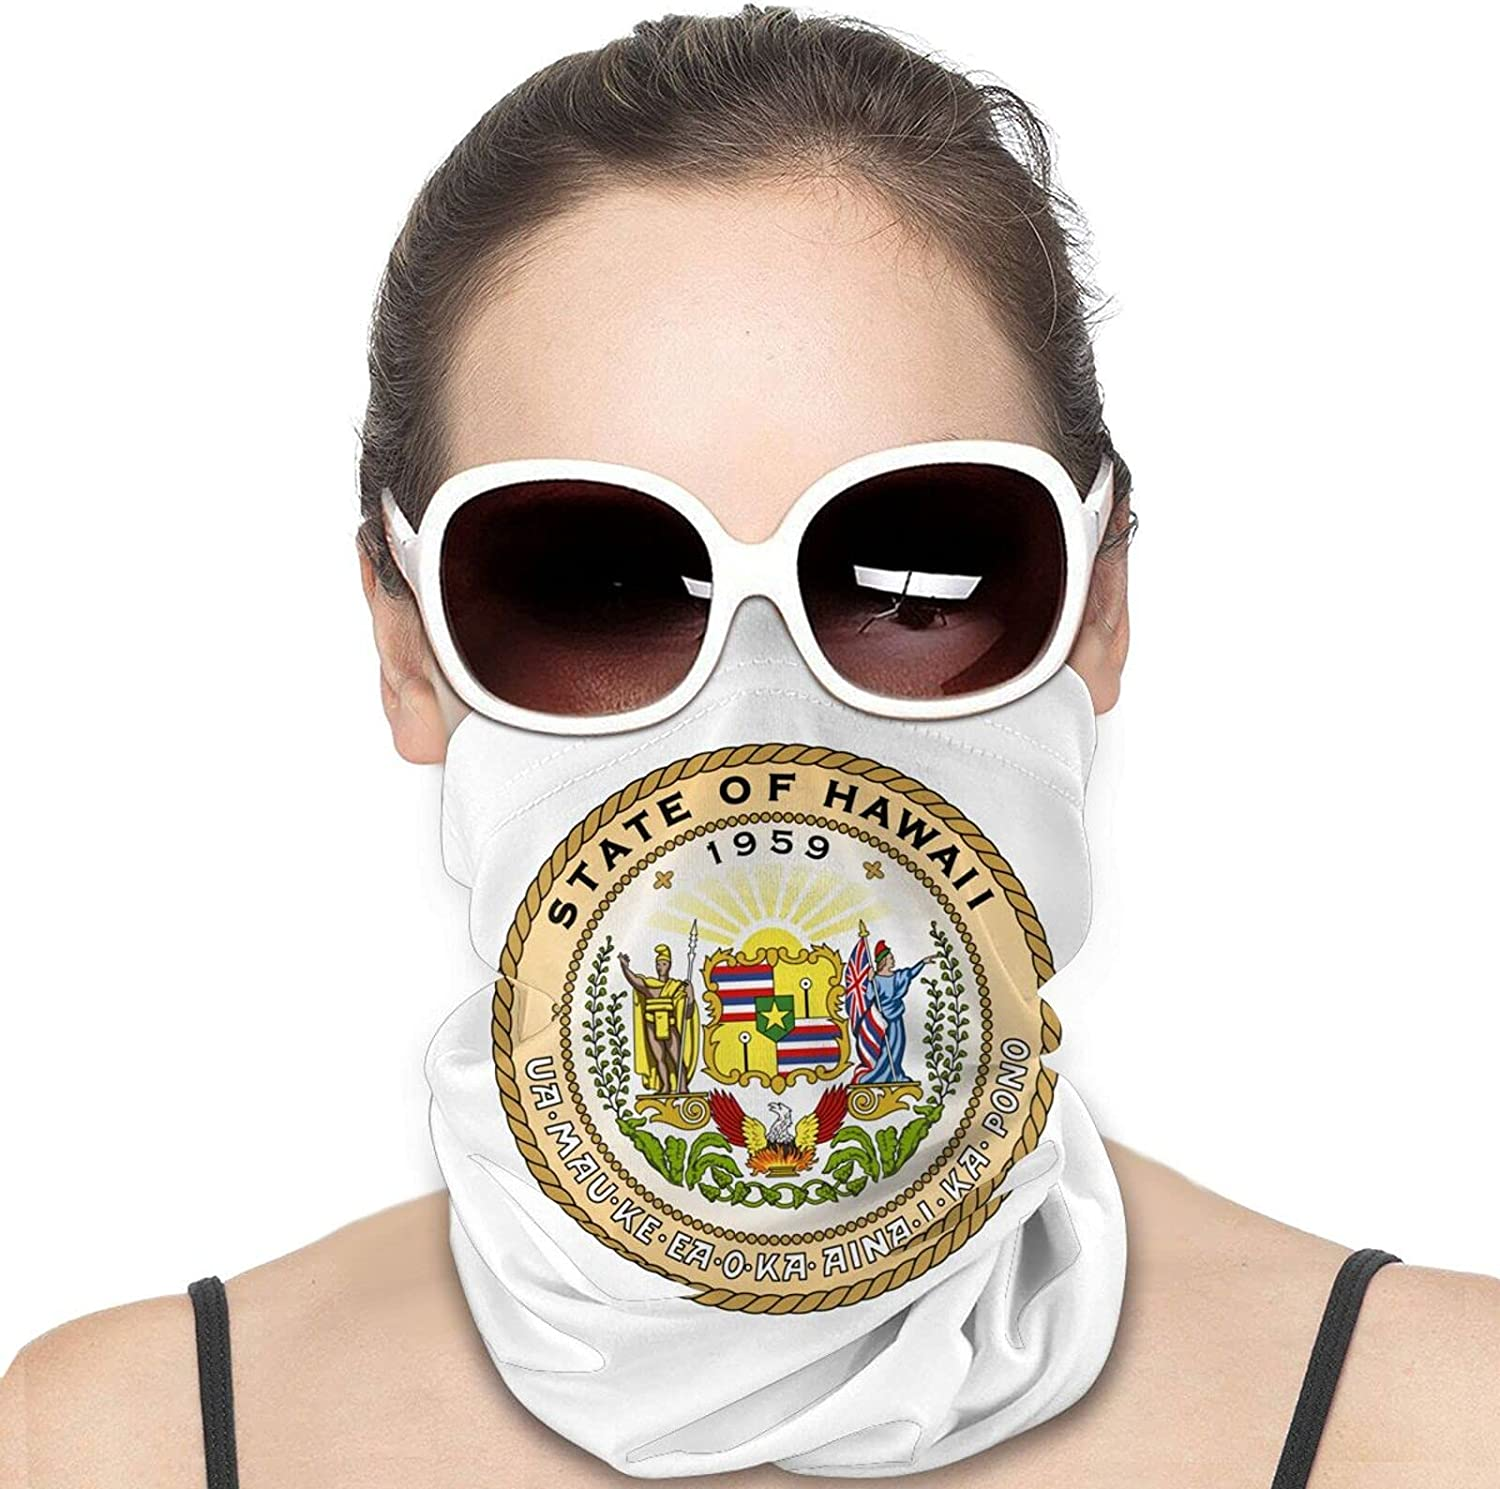 Seal of the State of Hawaii Round Neck Gaiter Bandnas Face Cover Uv Protection Prevent bask in Ice Scarf Headbands Perfect for Motorcycle Cycling Running Festival Raves Outdoors